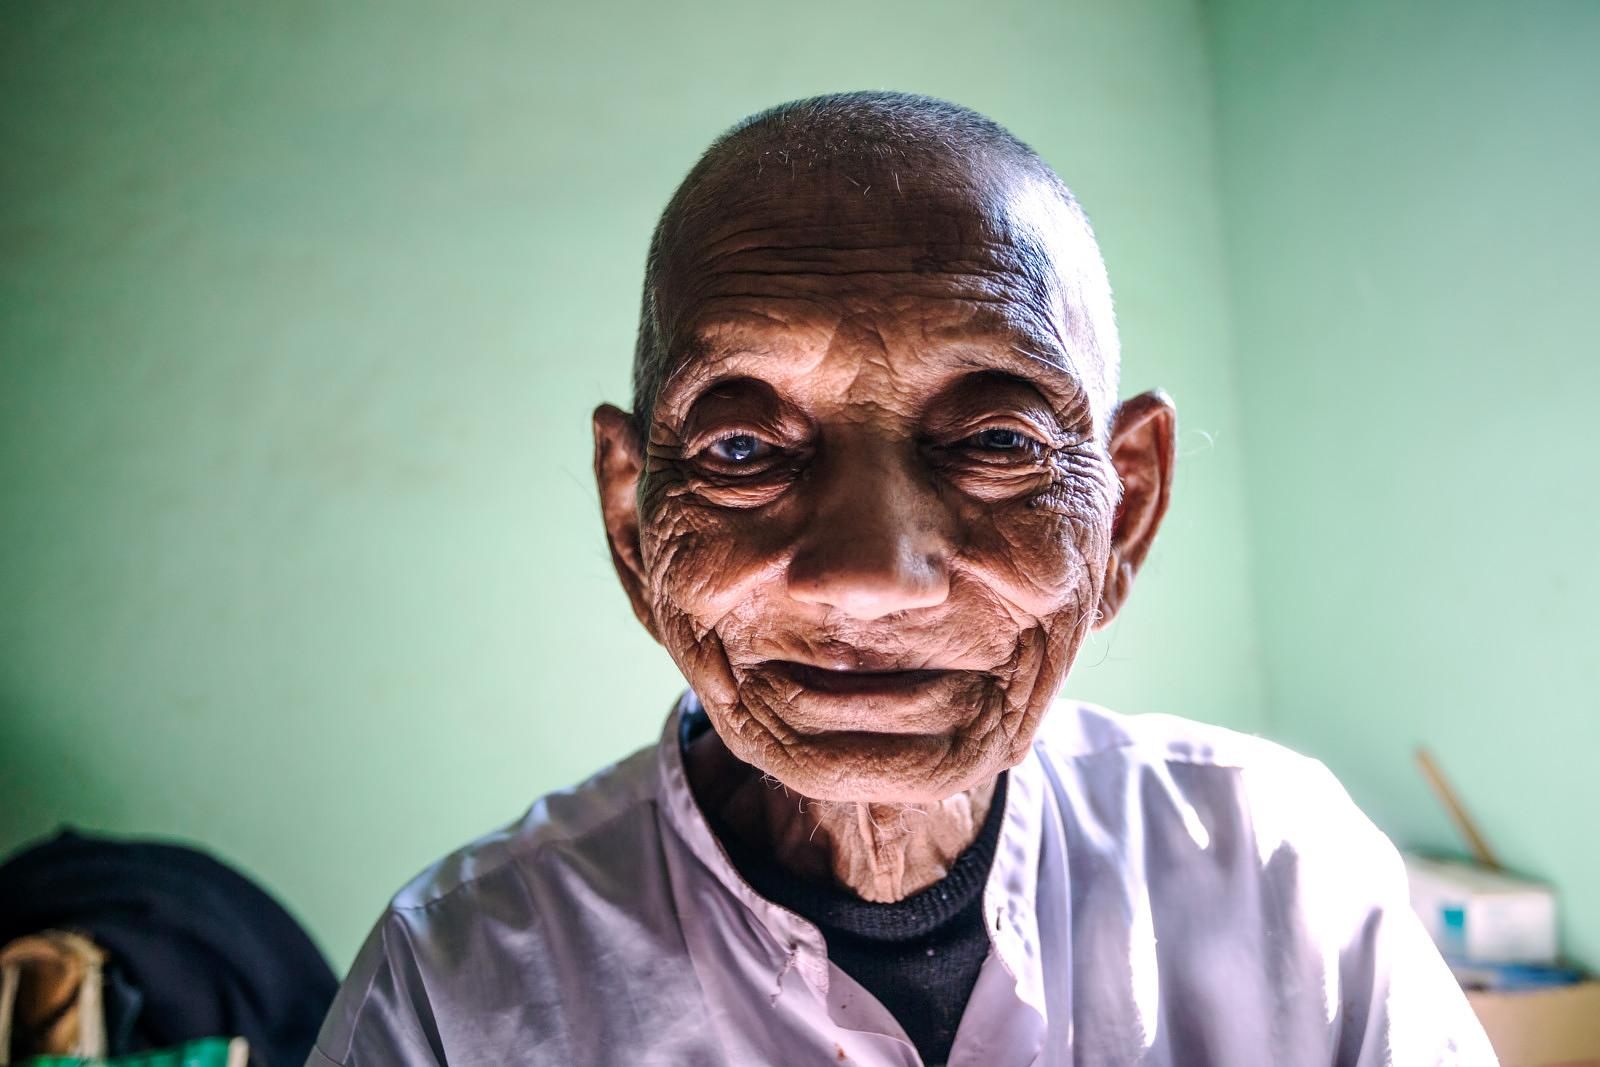 Portrait of old burmese man, Mandalay, Myanmar